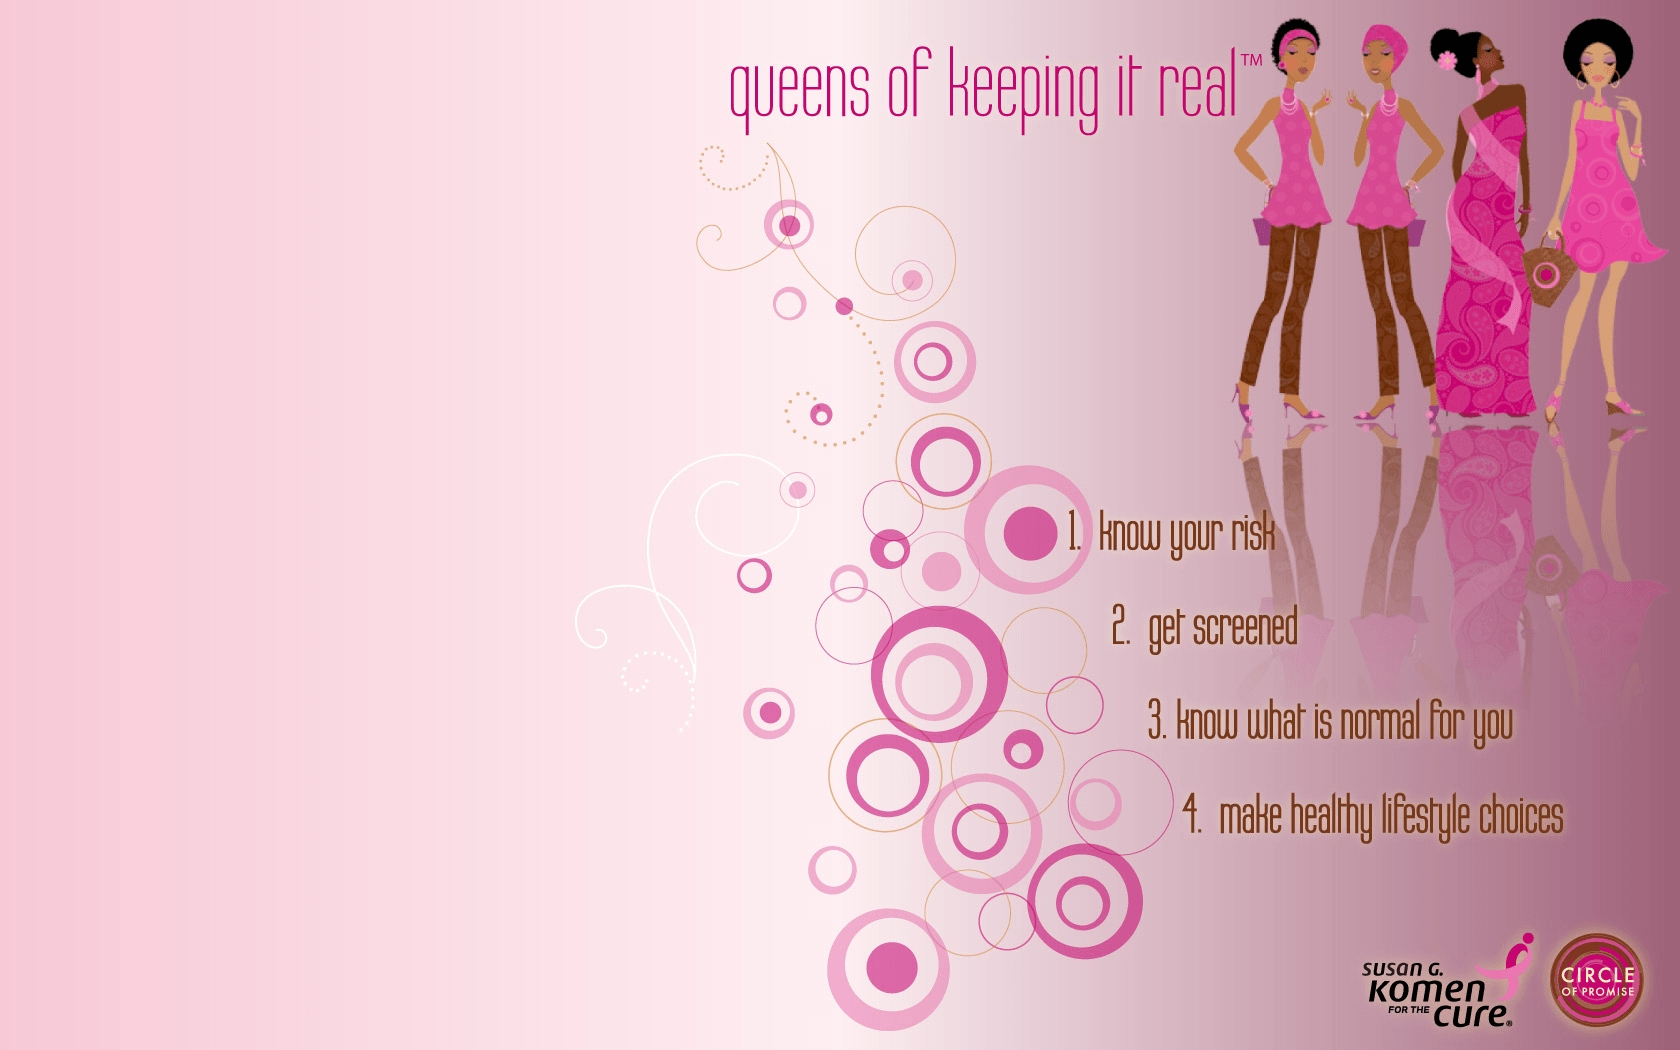 Title Breast Cancer Awareness Wallpapers Wallpaper Cave Dimension 1680 X 1050 File Type JPG JPEG